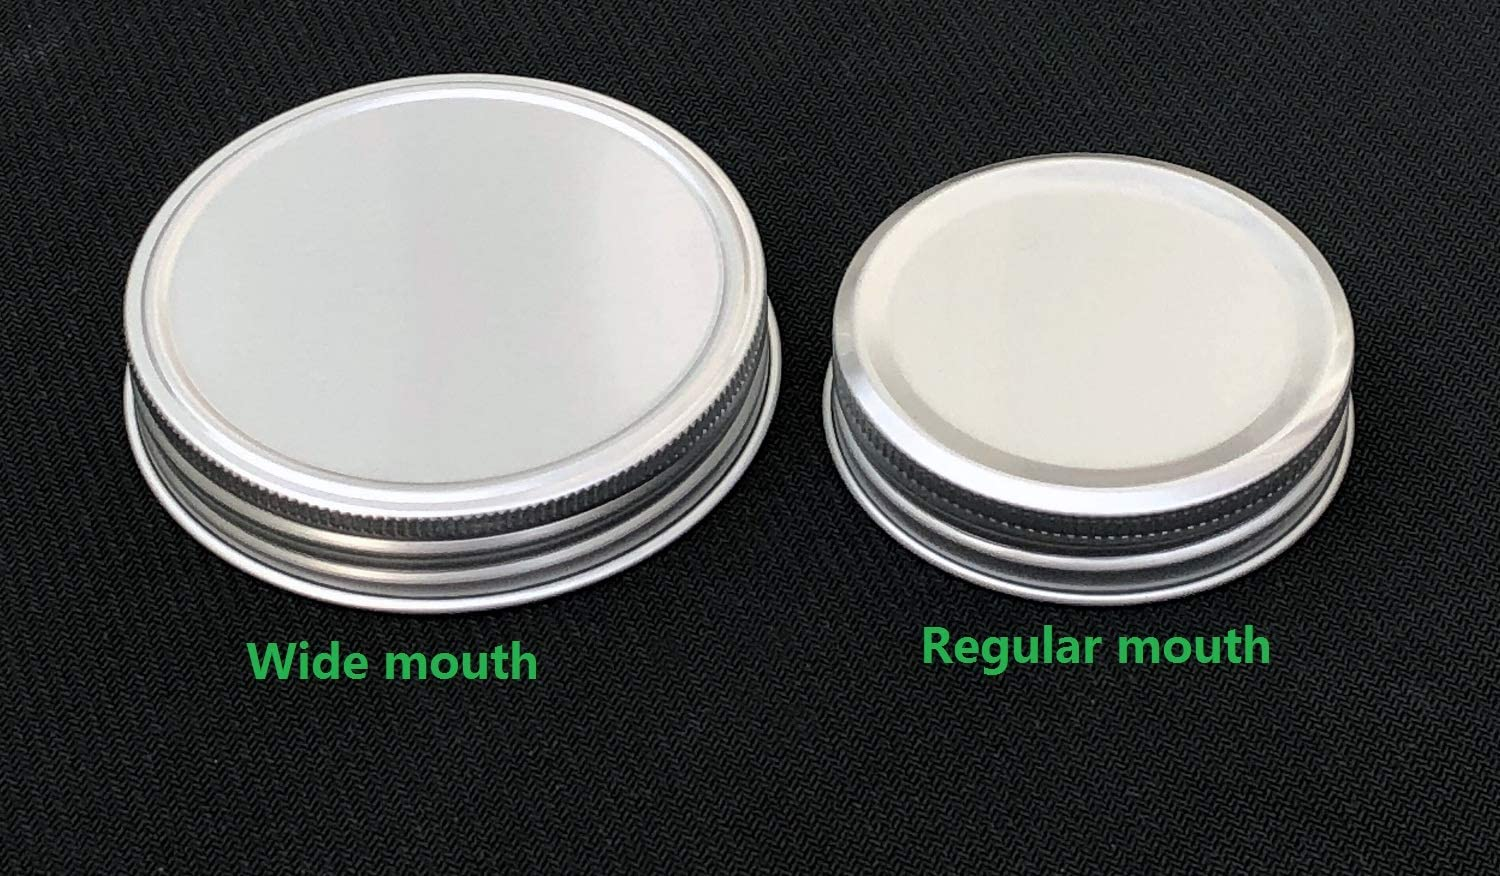 Pack of 6,Regular Mouth Rust Resistant Silver Aluminum Air Tight Storage Mason Jar Lids Regular Mouth Leak Proof and Secure,Dishwasher Safe,BPA Free